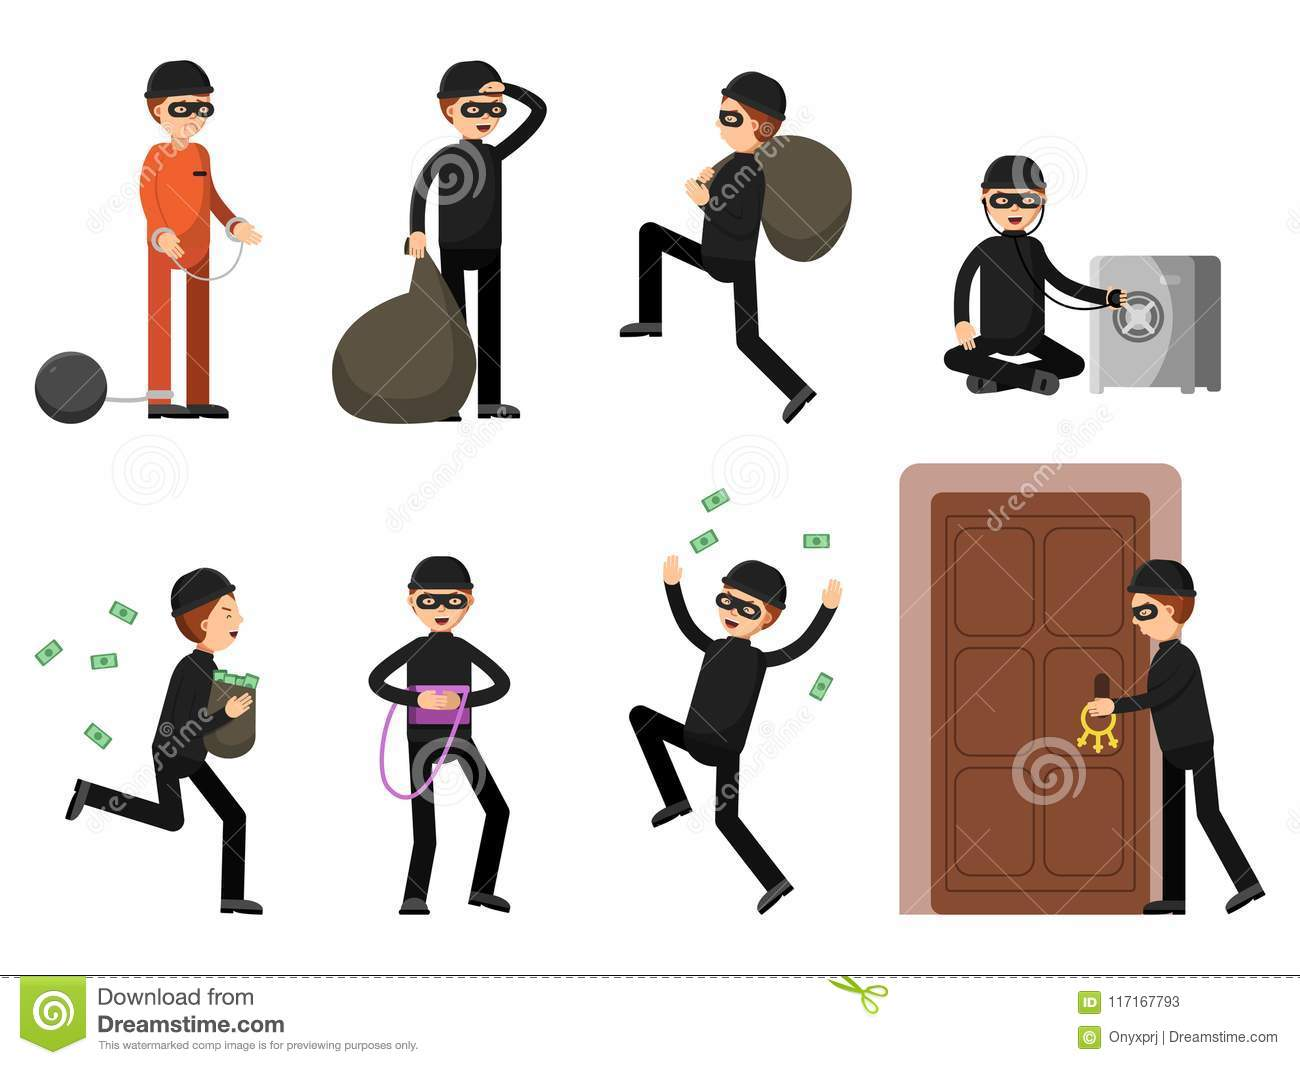 dd0f6cbfa98 Criminal illustrations of theif characters in different action poses.  Burglar male